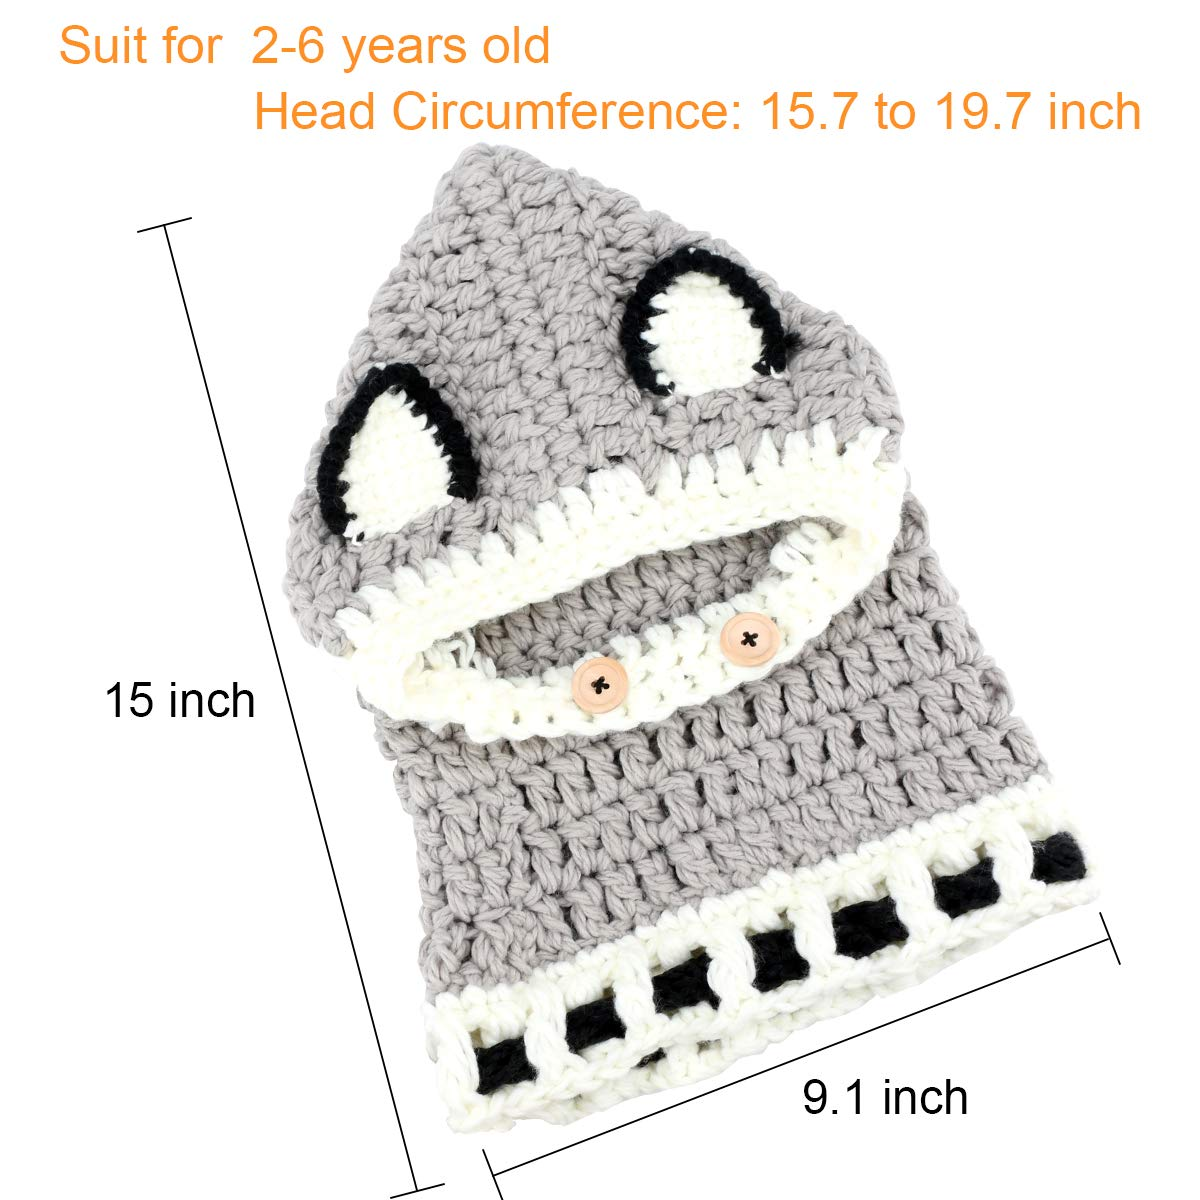 Baby Girls Boys Knit Hats Scarf Warm Fox Animal Caps Hood Scarves Earflap Snow Neck Warmer Cap with Ears for Autumn Winter 2-6 Years Old E-More Kids Winter Hat Grey